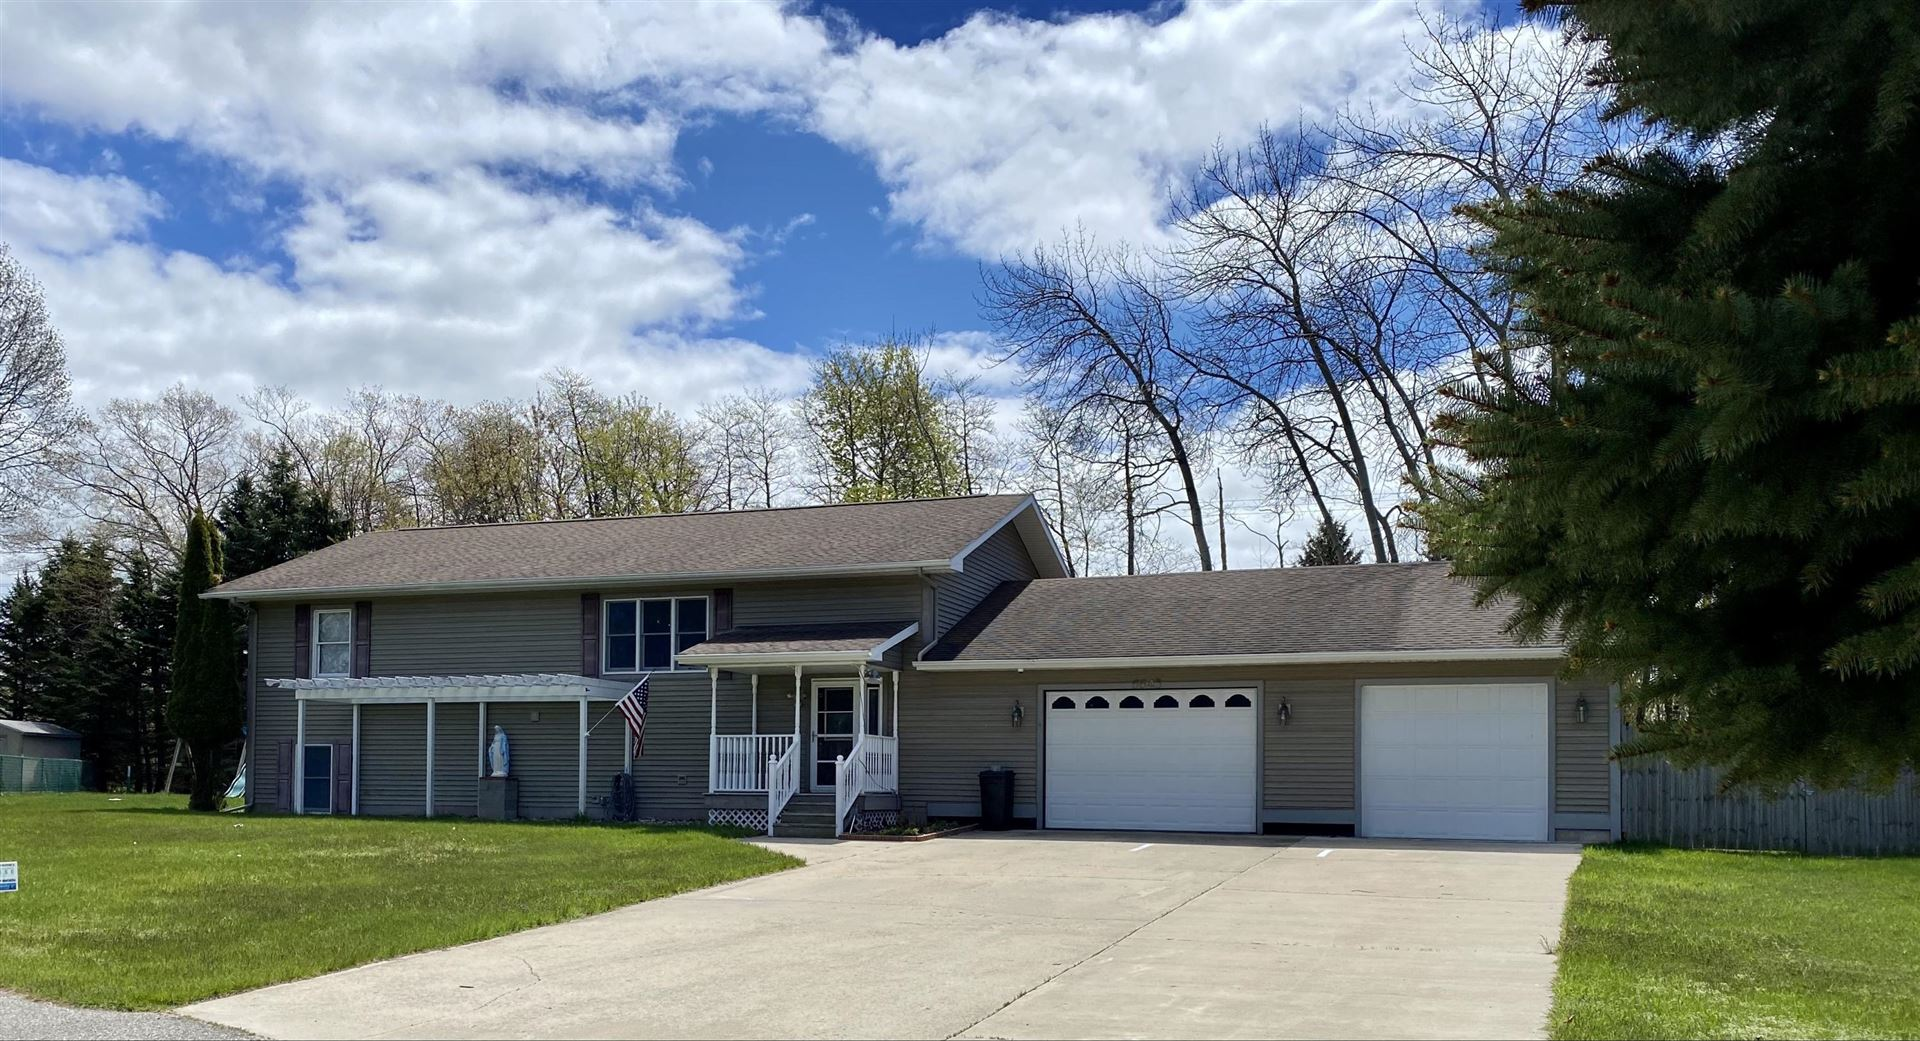 6643 W Park View Court, Ludington, MI 49431 - MLS#: 21013044